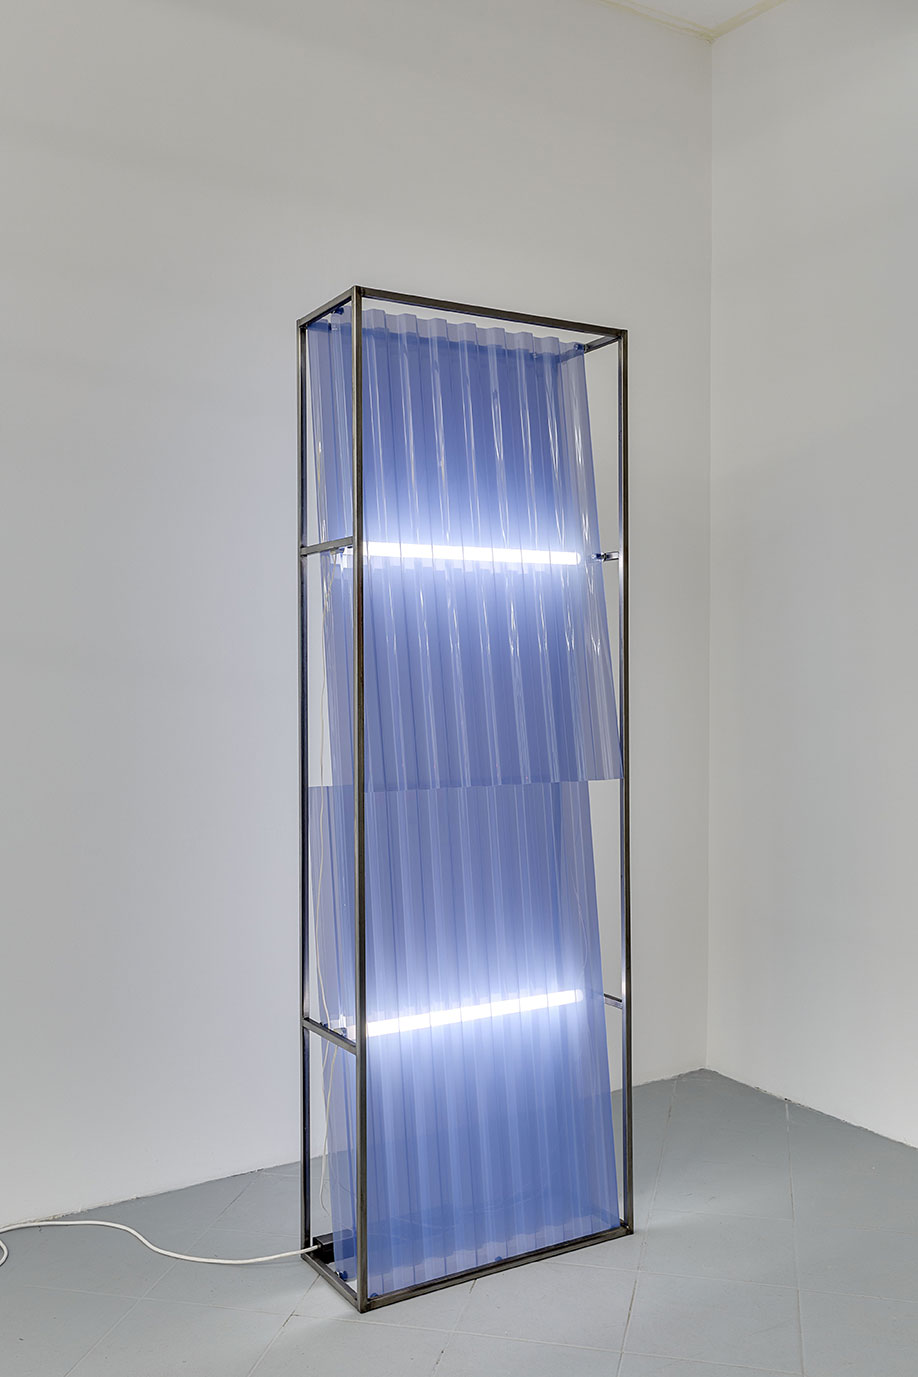 <b>Title: </b>CS02<br /><b>Year: </b>2017<br /><b>Medium: </b>Steel, fluorescent light, PVC corrugated roofing sheets<br /><b>Size: </b>190 x 27 x 64 cm